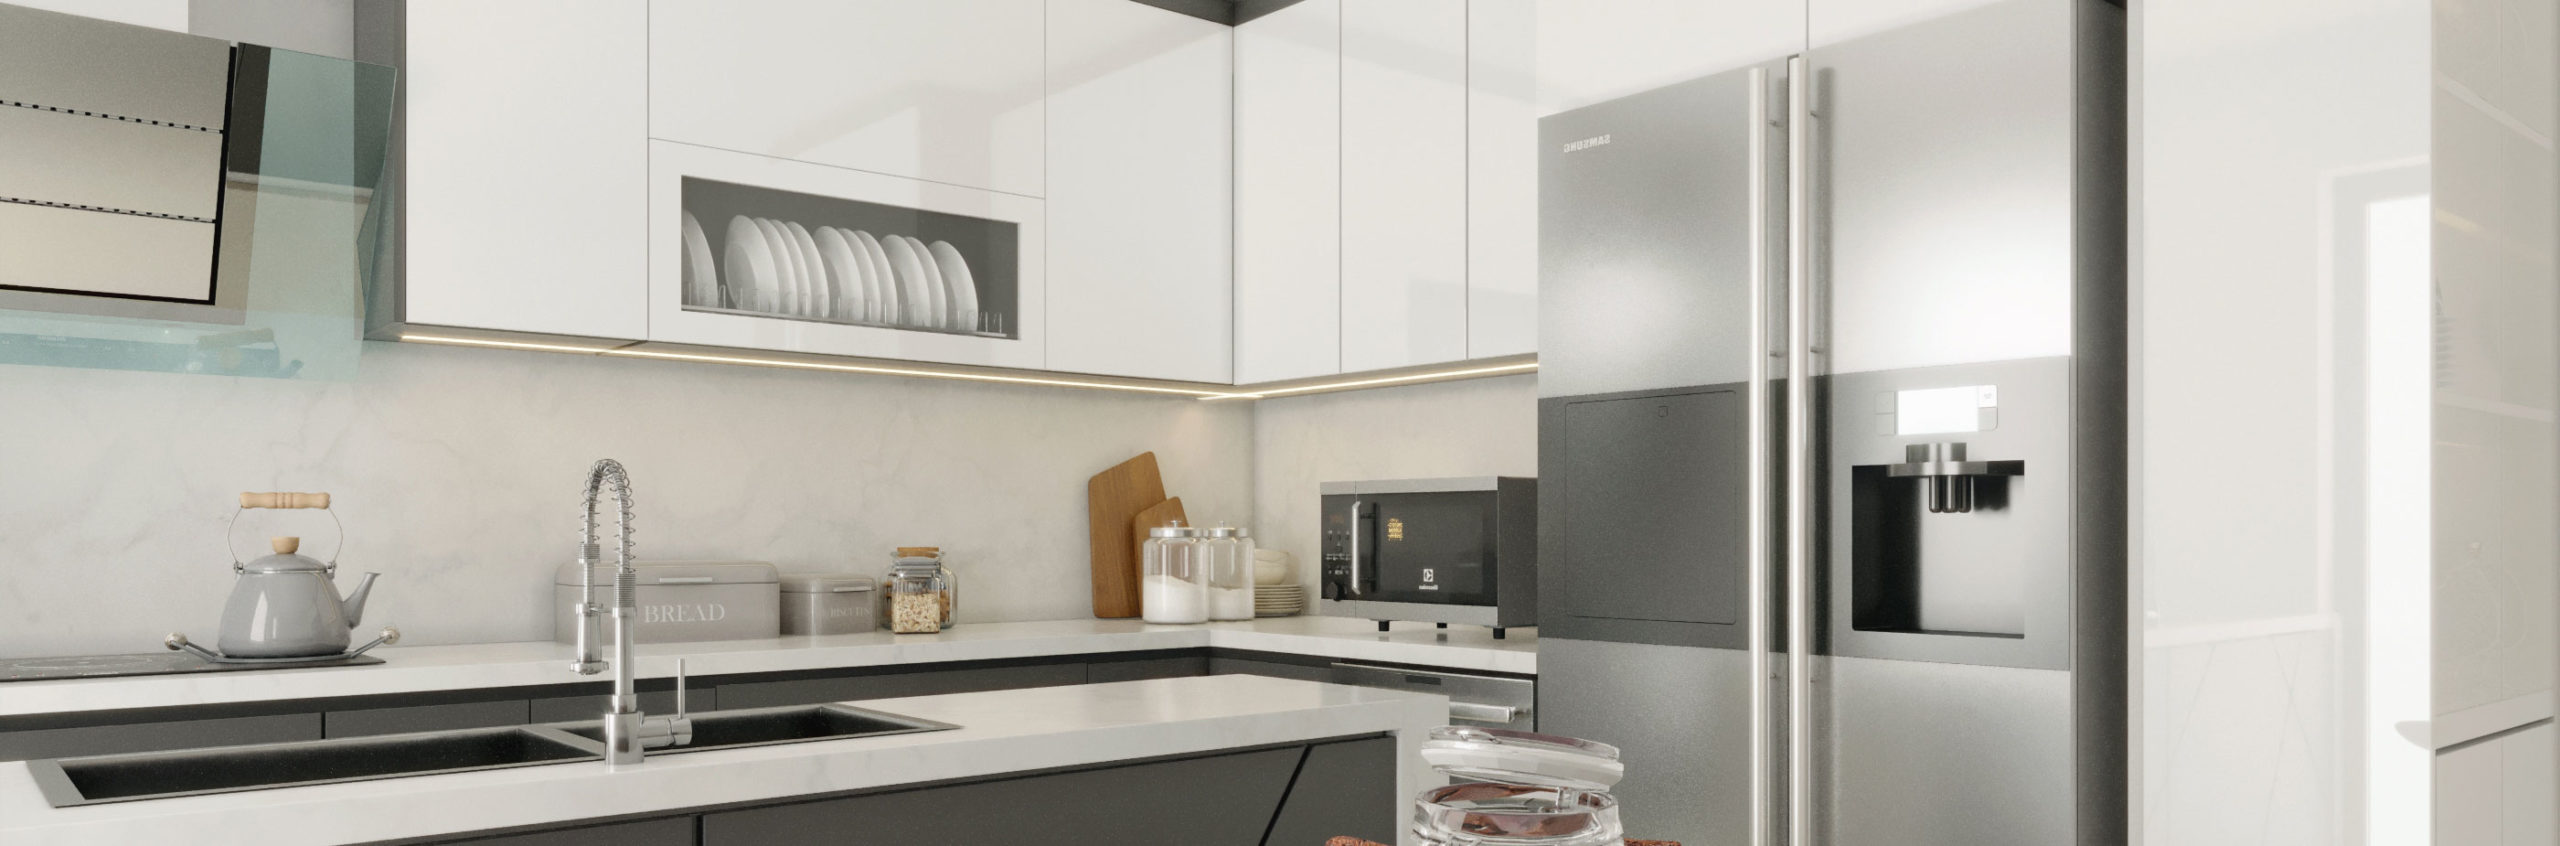 Kitchen Renovations Miami